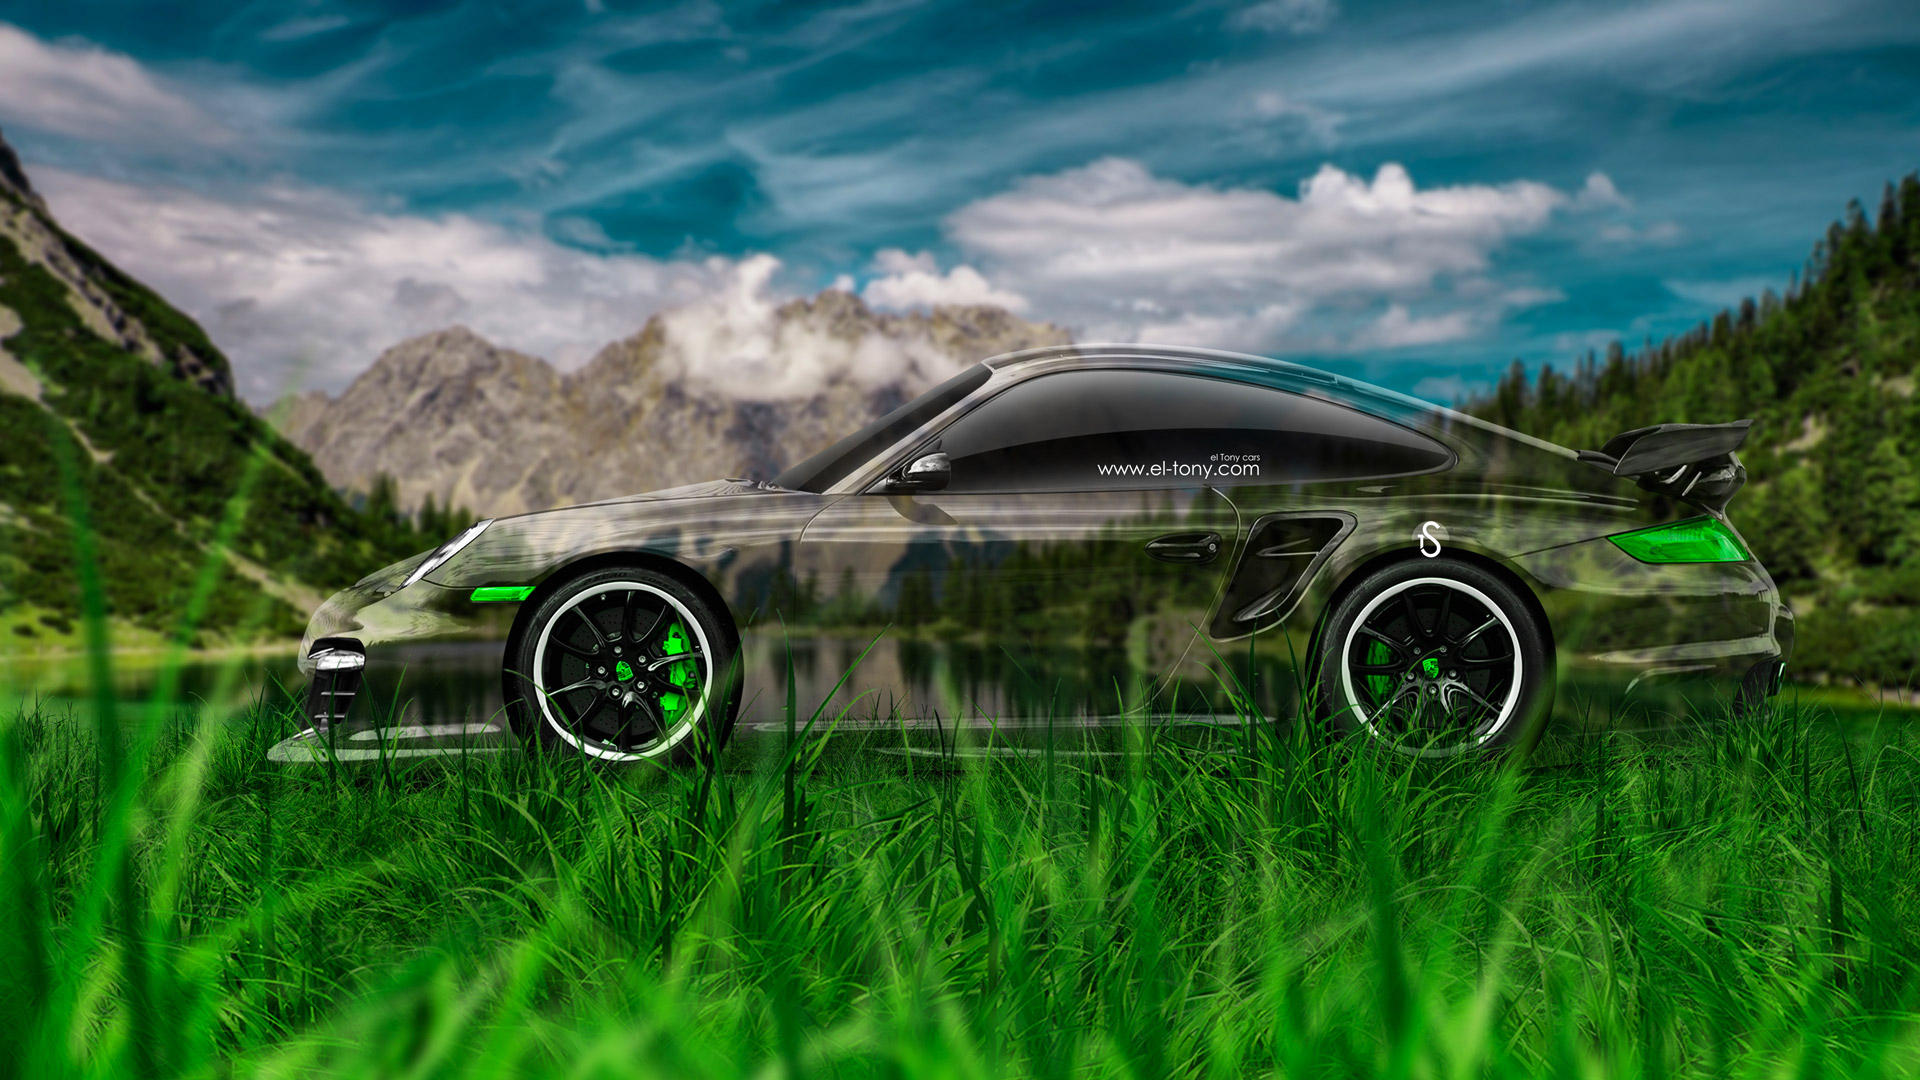 Porsche-911-GT2-Side-Crystal-Nature-Car-2014-Photoshop-HD-Wallpapers-design-by-Tony-Kokhan-[www.el-tony.com]